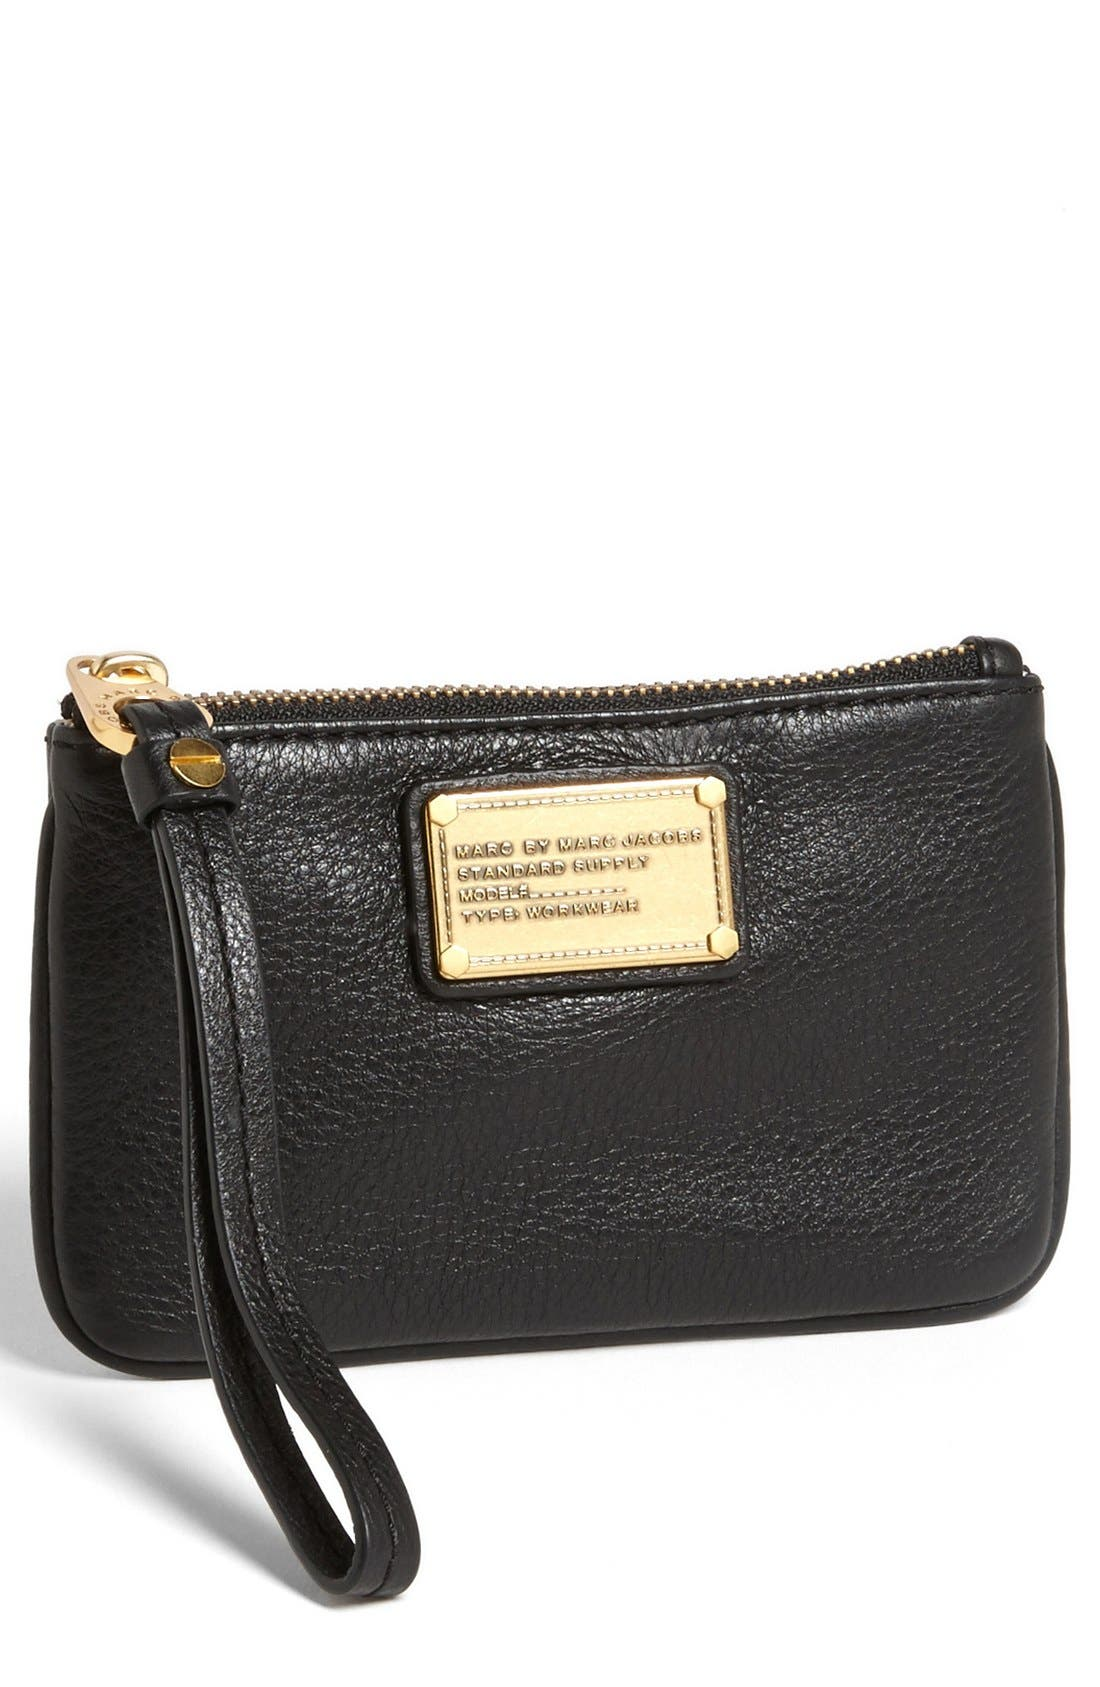 "MARC BY MARC JACOBS 'Small Classic Q"" Wristlet,                             Main thumbnail 1, color,                             001"